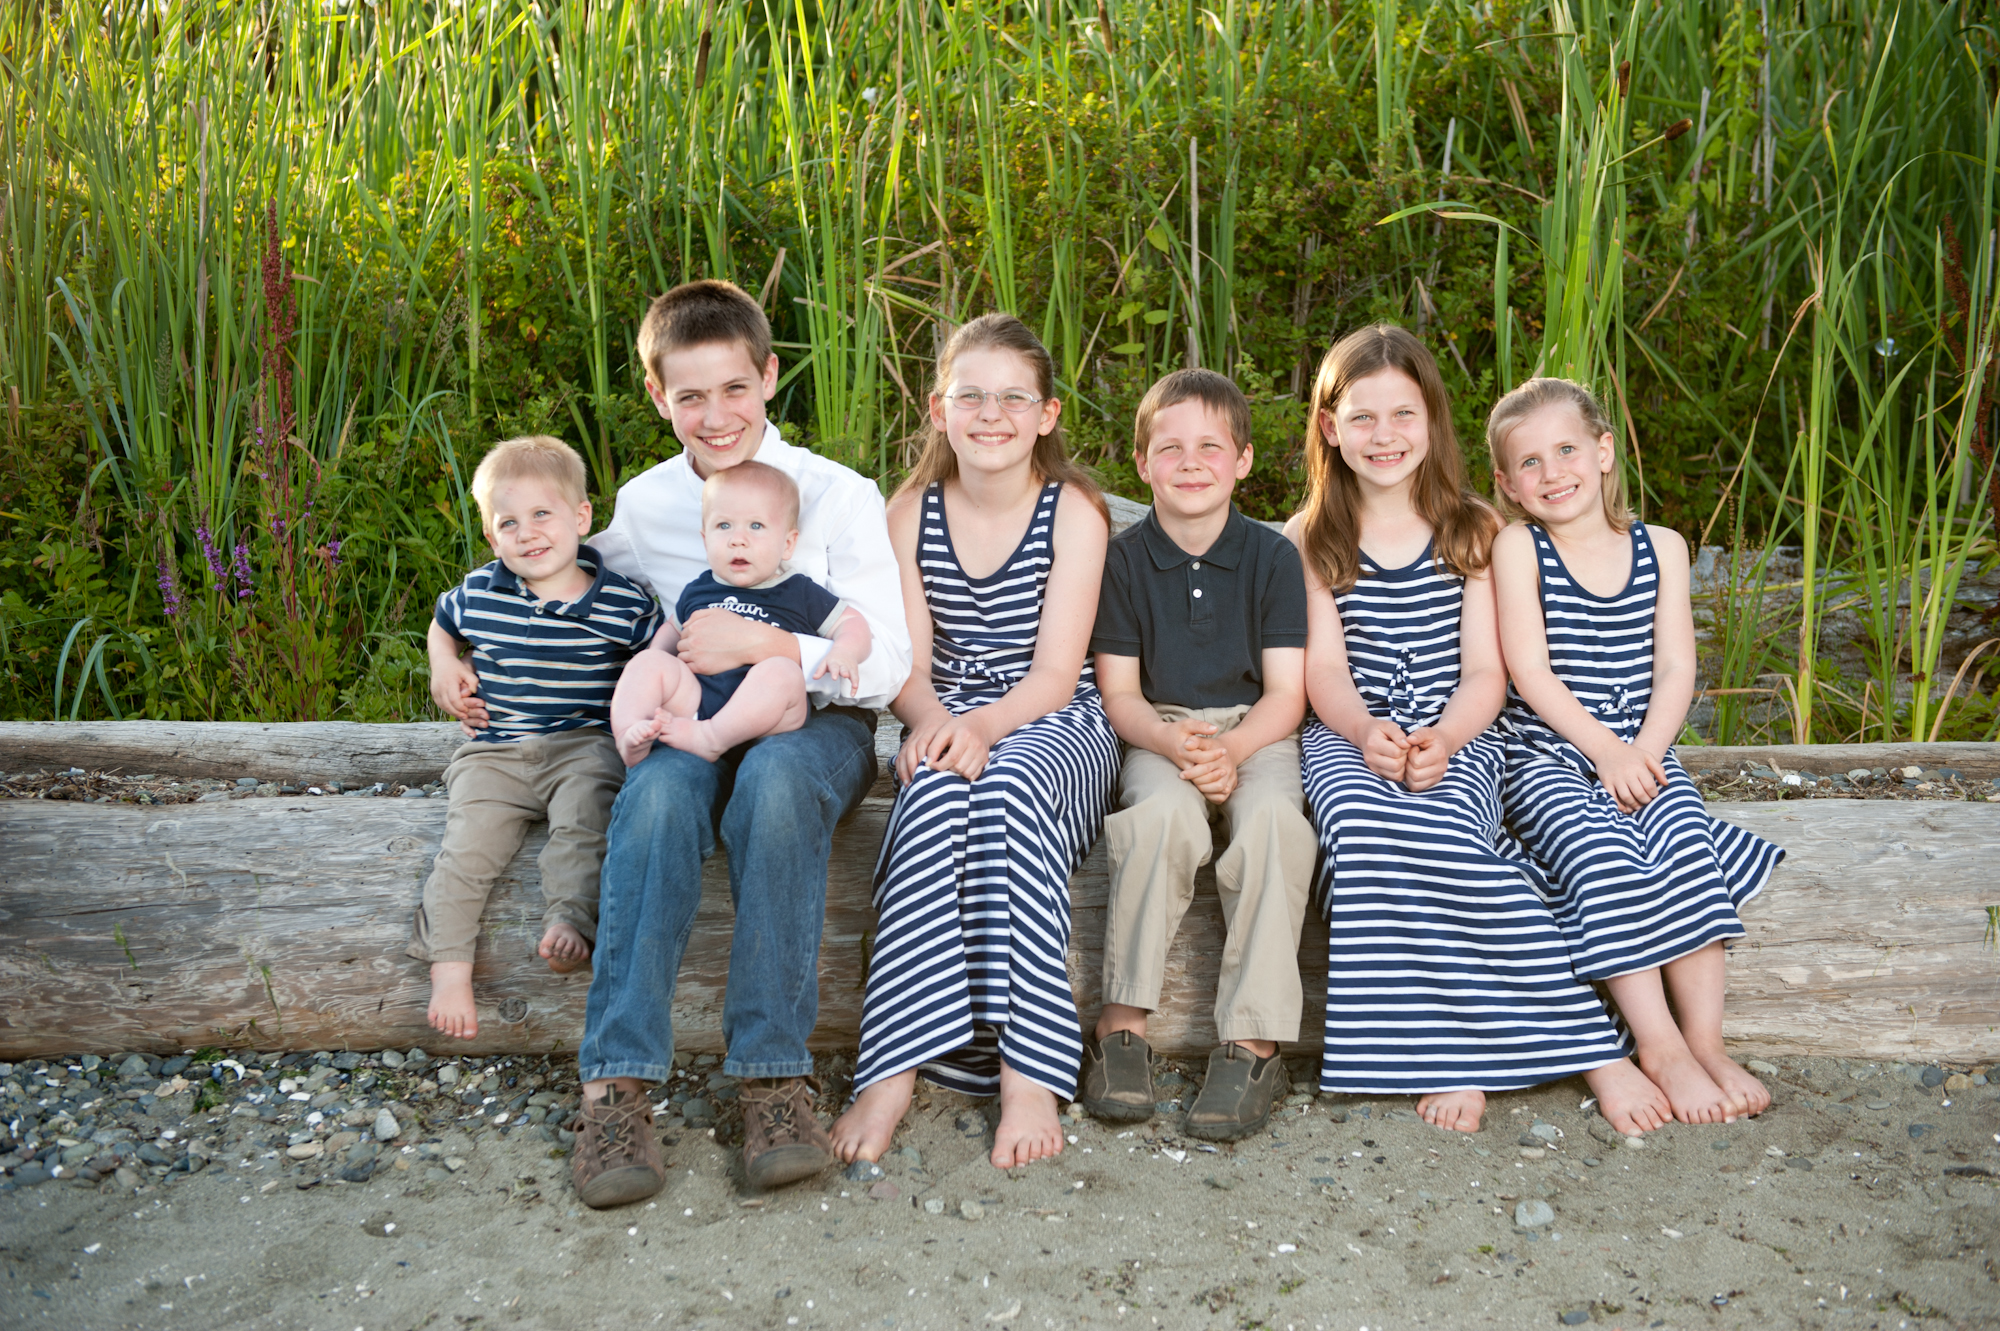 bainbridge island tara and jeremy family photography